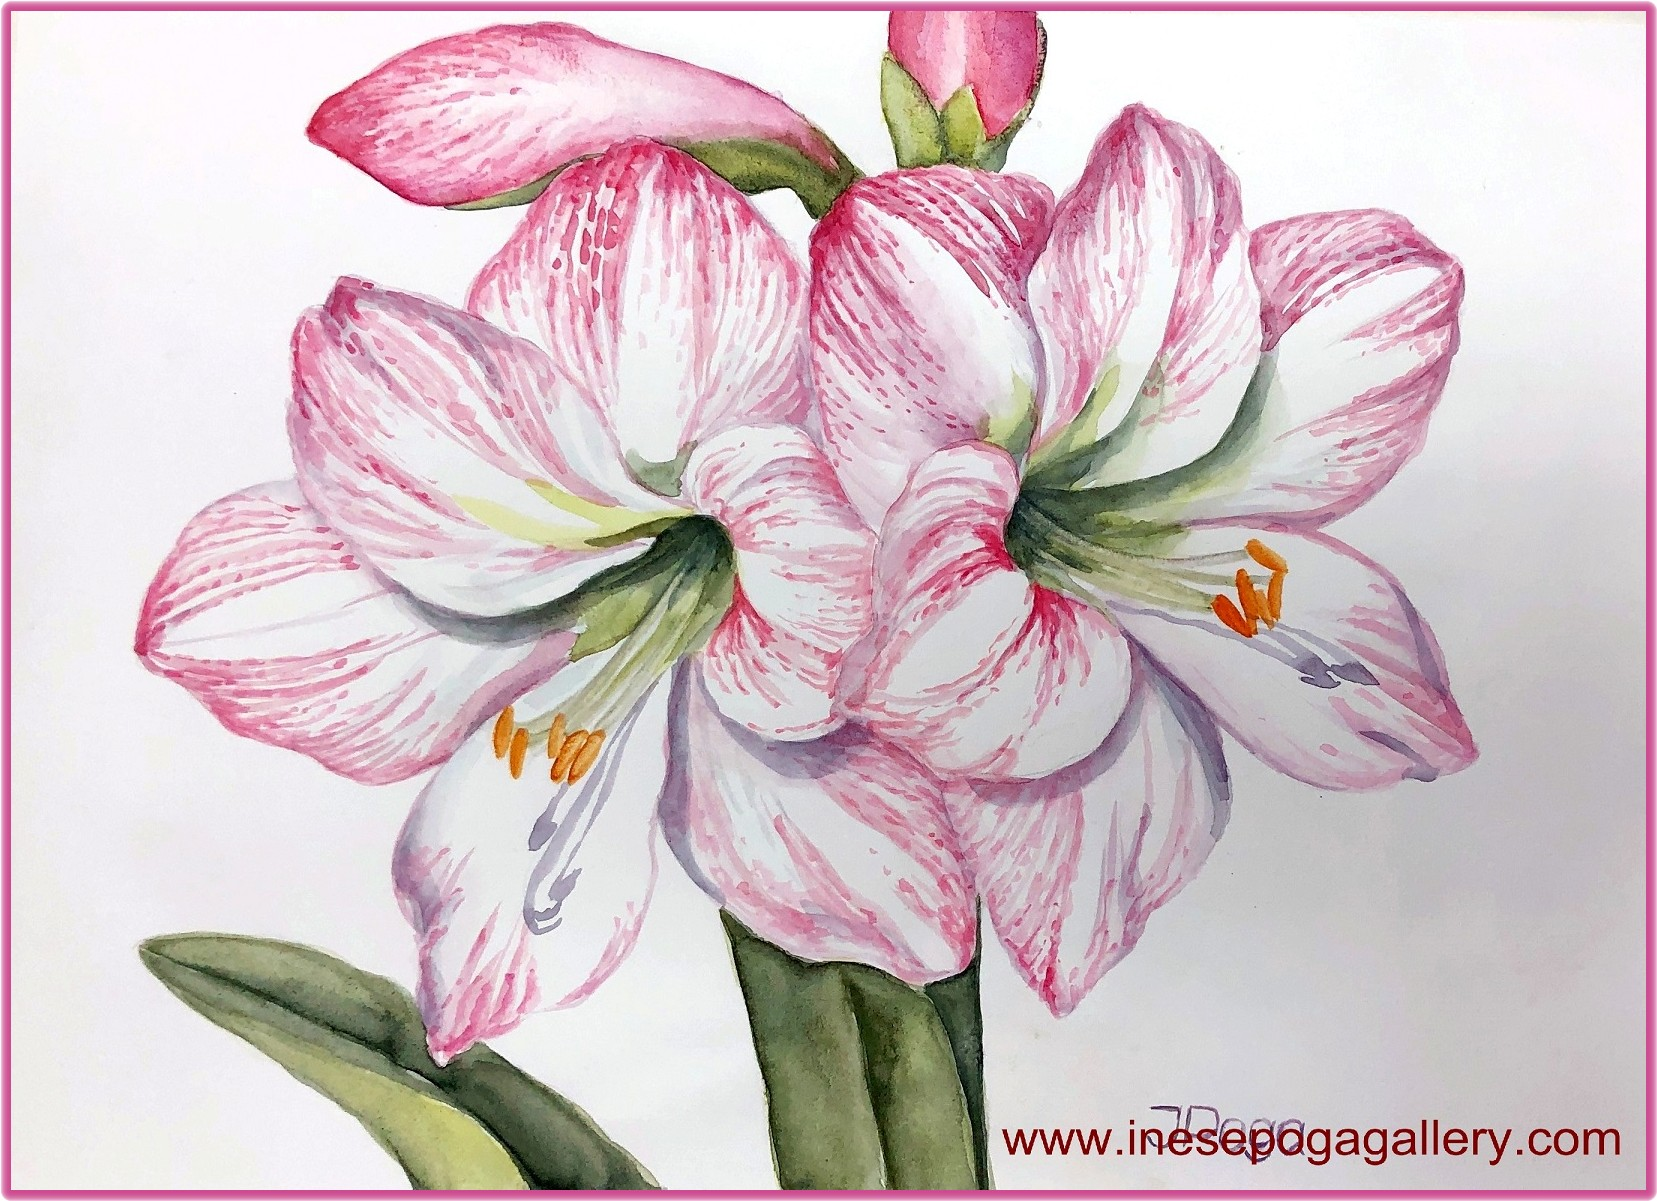 Floral watercolors: the softness that soothes